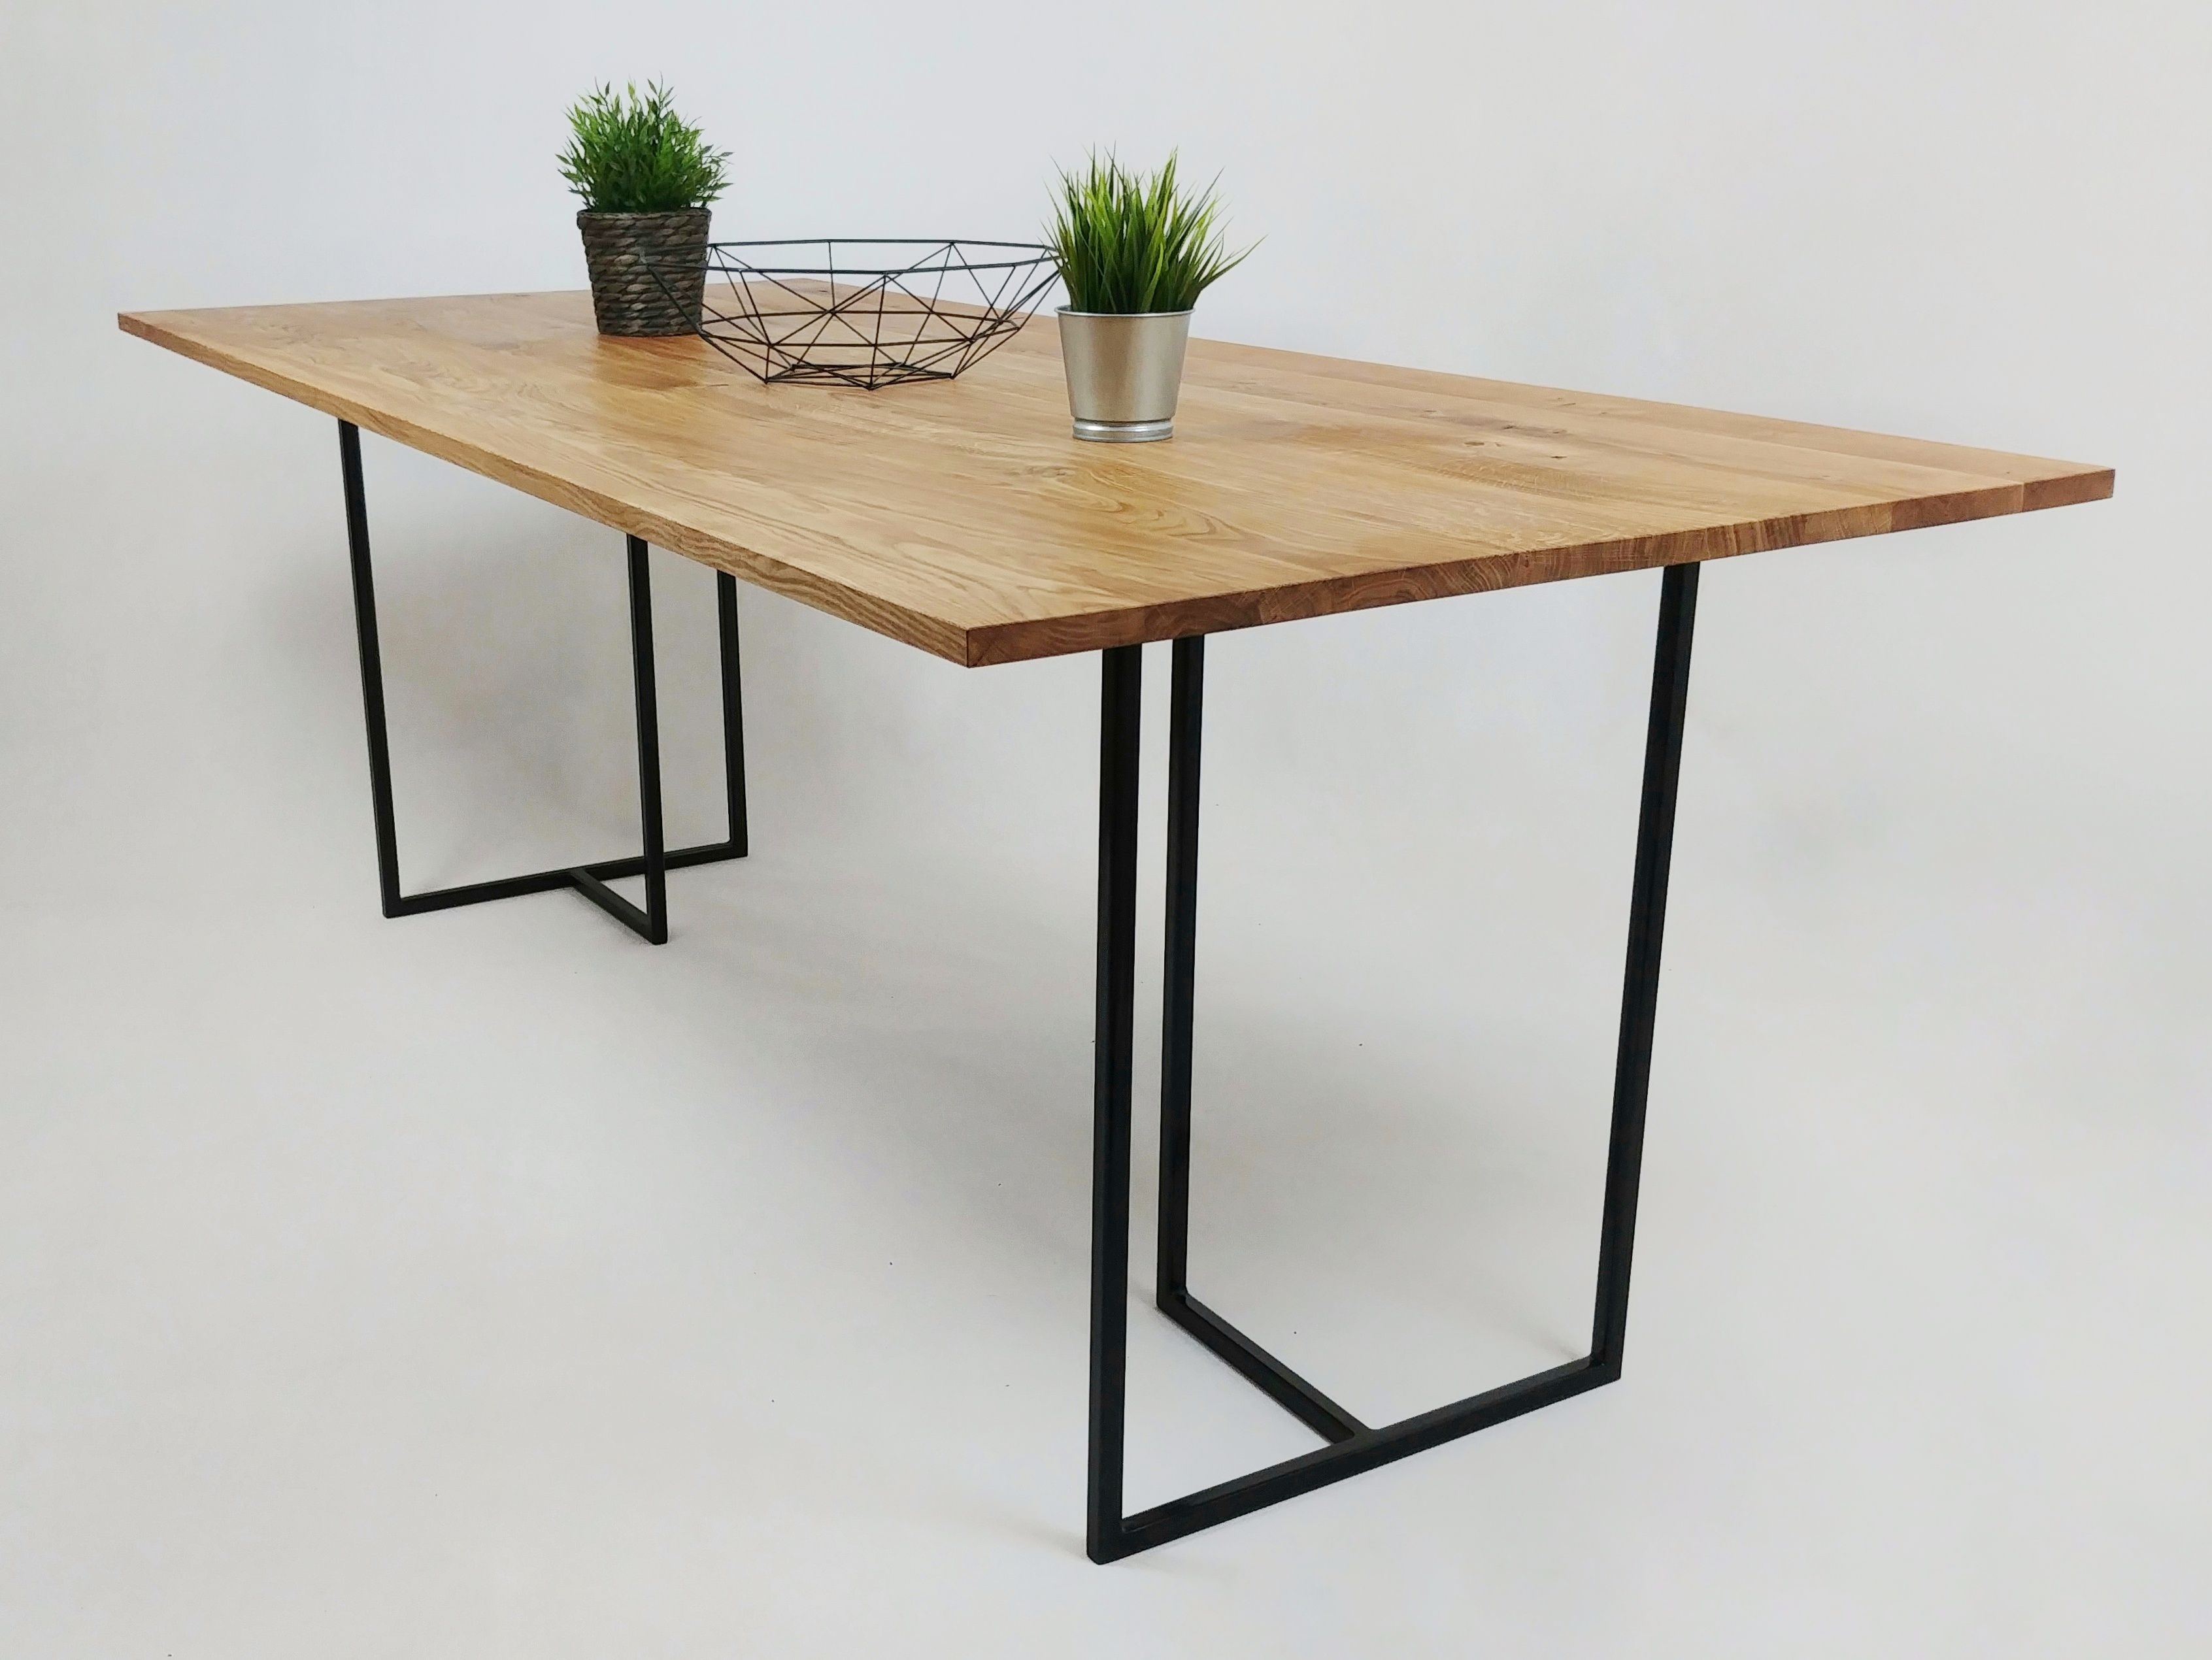 Thin Oak Wood Top Dining Table With Black Steel Frame Dining